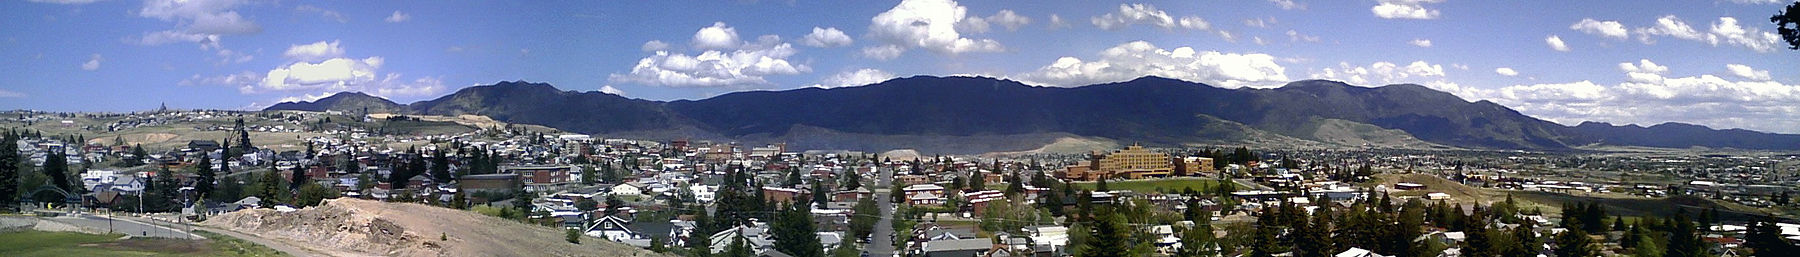 Butte seen from the campus of Montana Tech